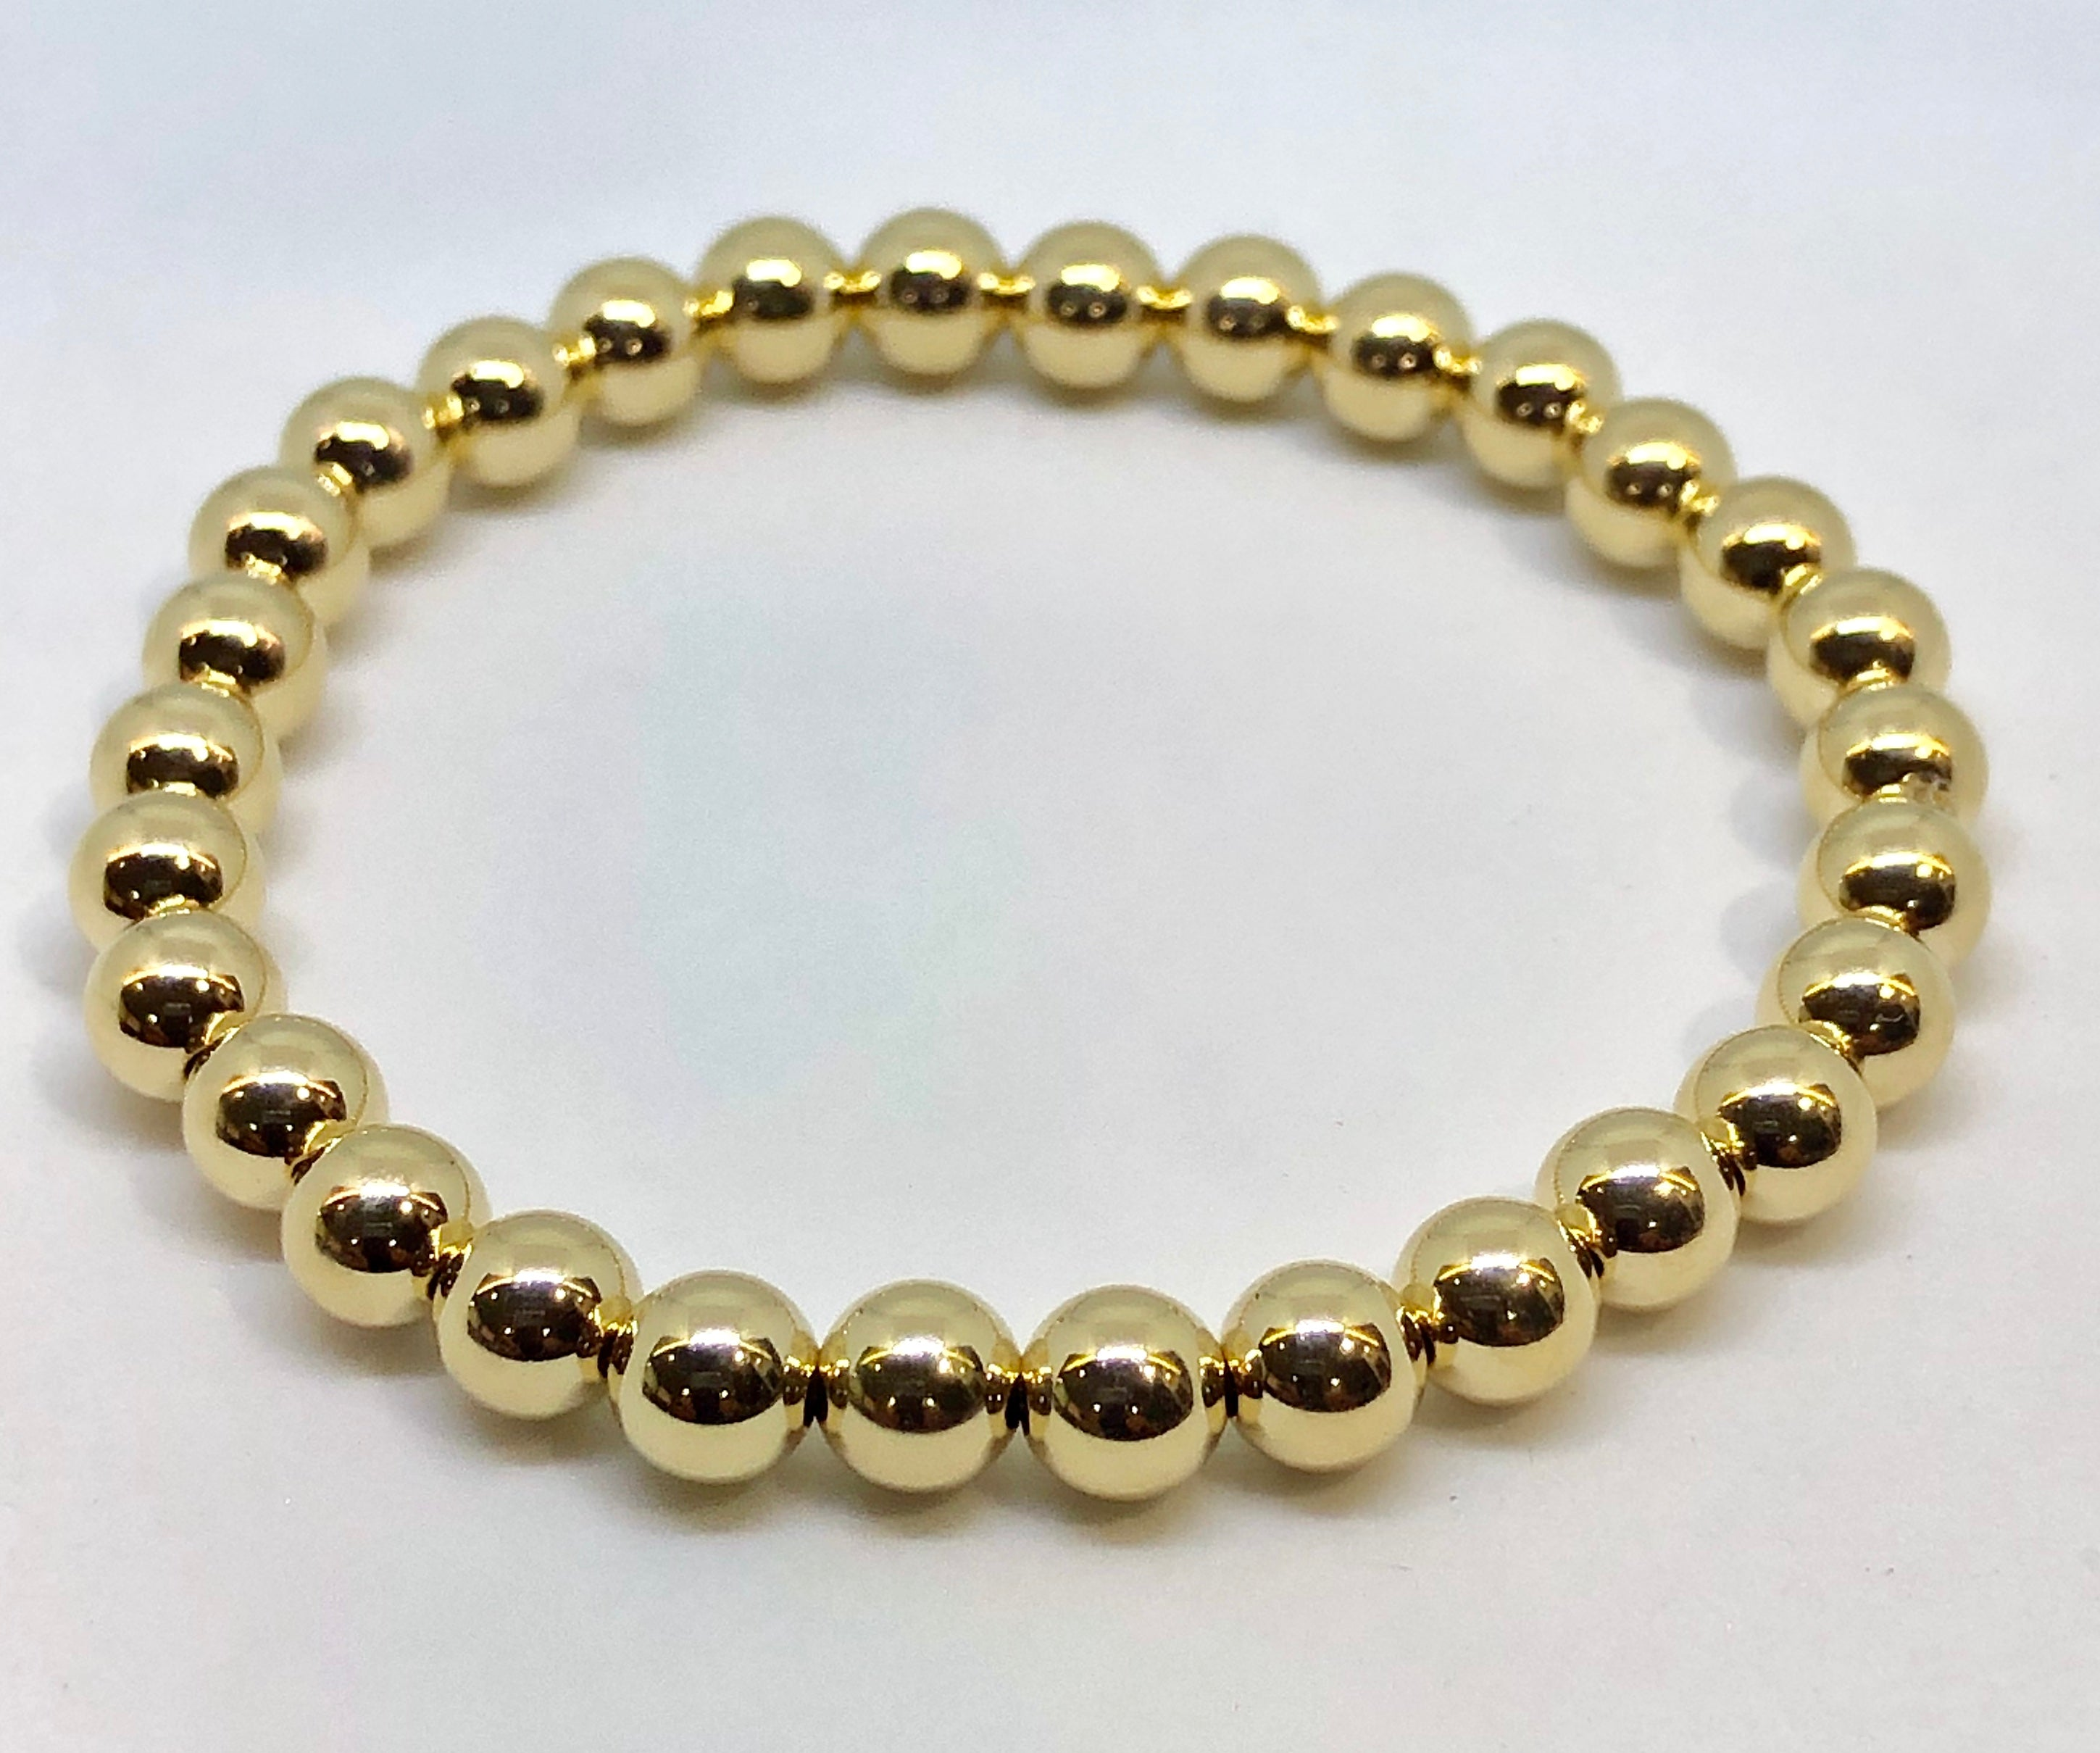 6mm 14kt Gold Filled Bead Bracelet